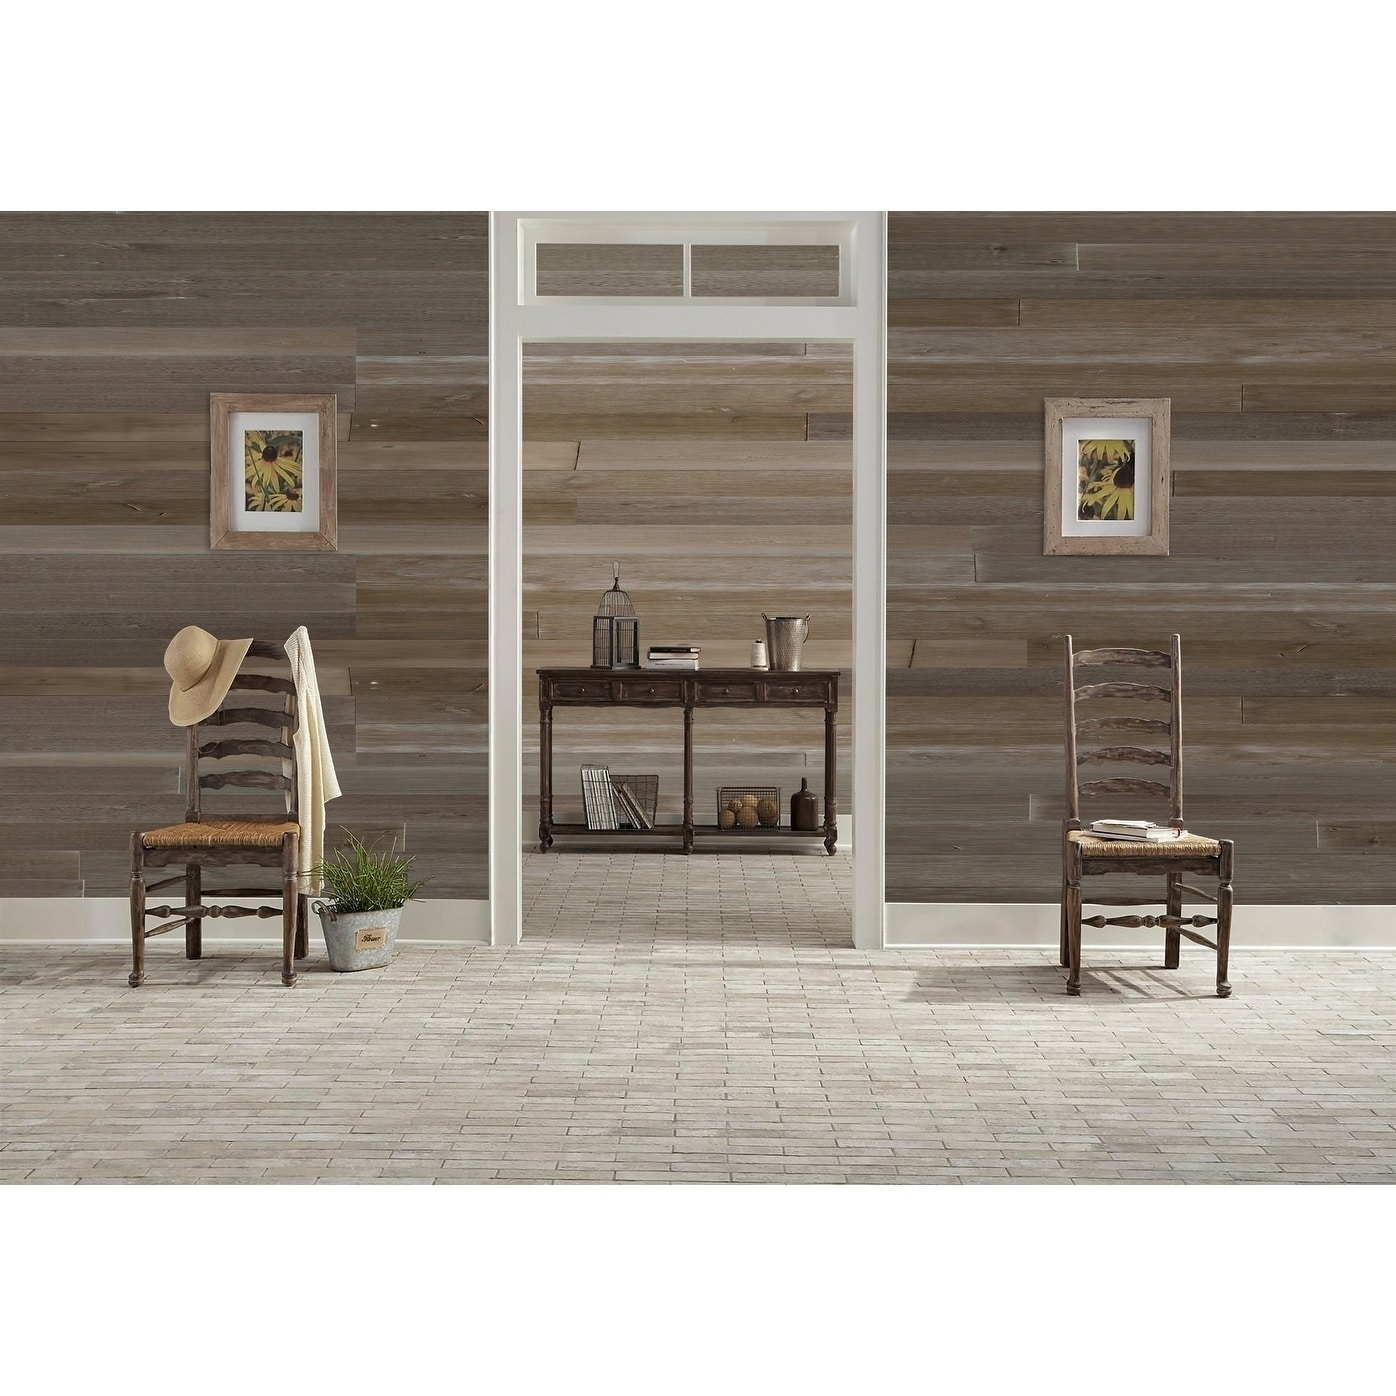 1 Square Foot Sample Pack Reclaimed Barn Wood Wall Paneling Planks For Accent Walls